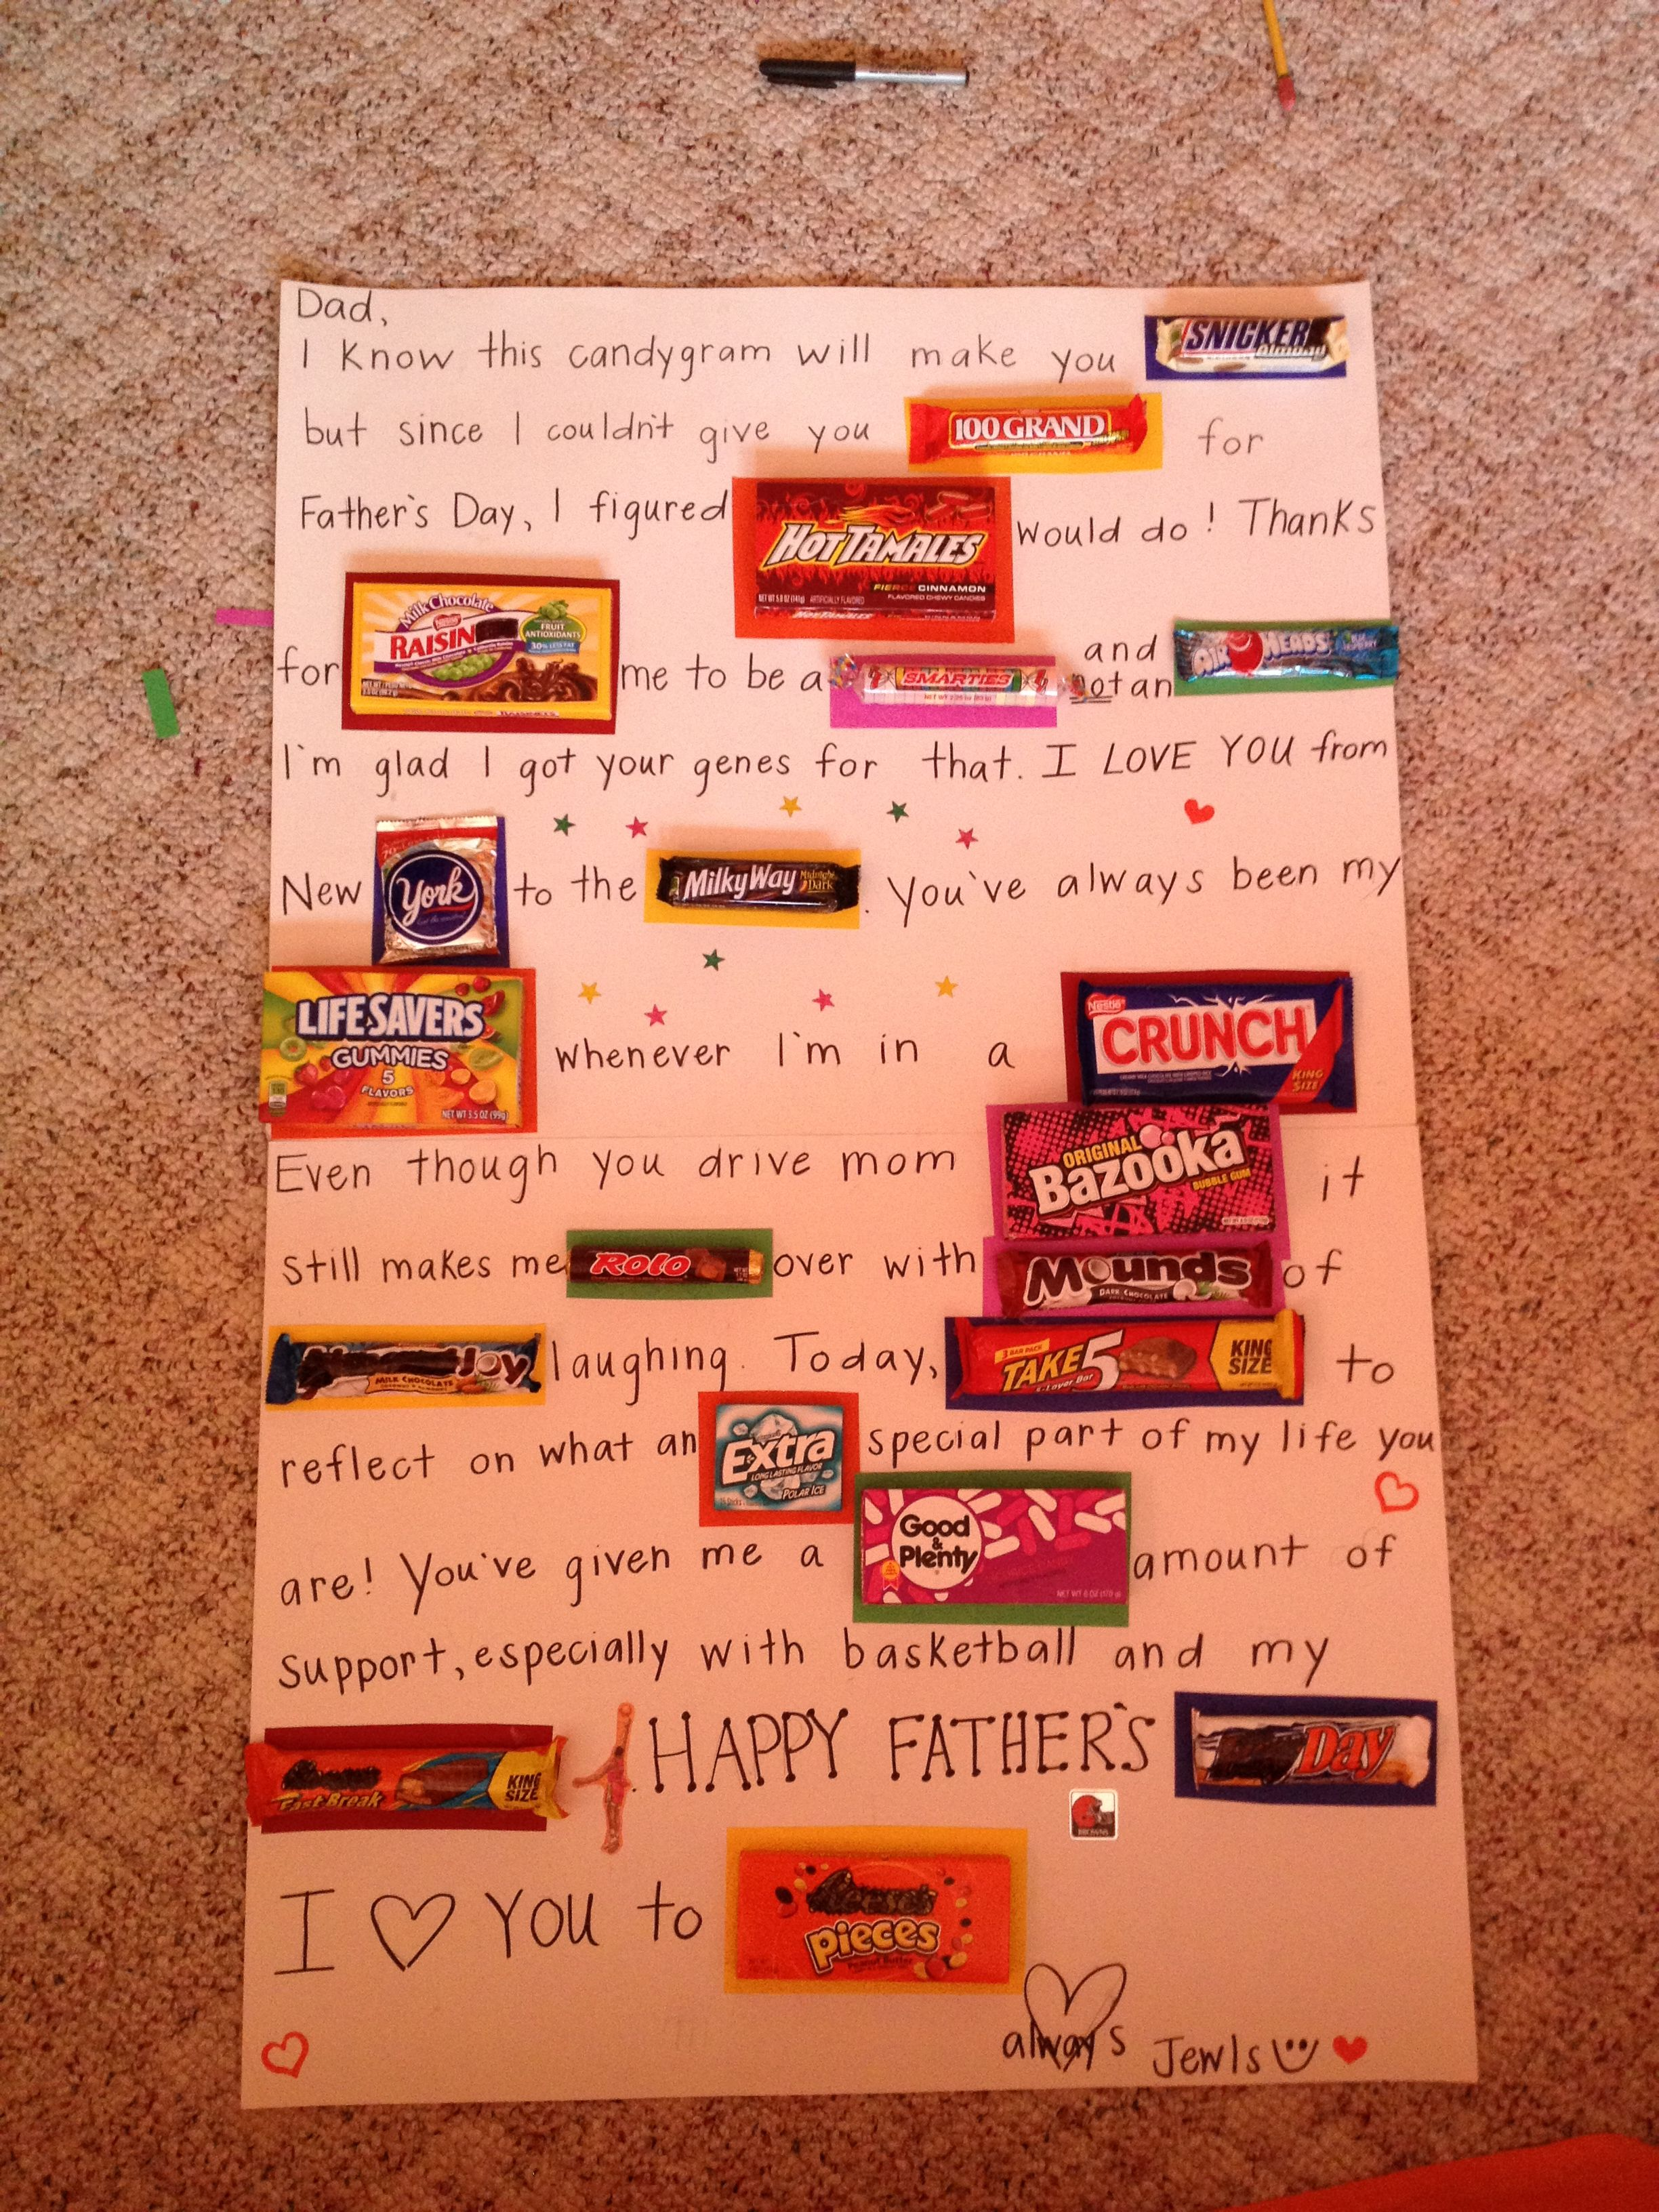 How To Print Car Wrapper Label For Hershey Bars | just b.CAUSE